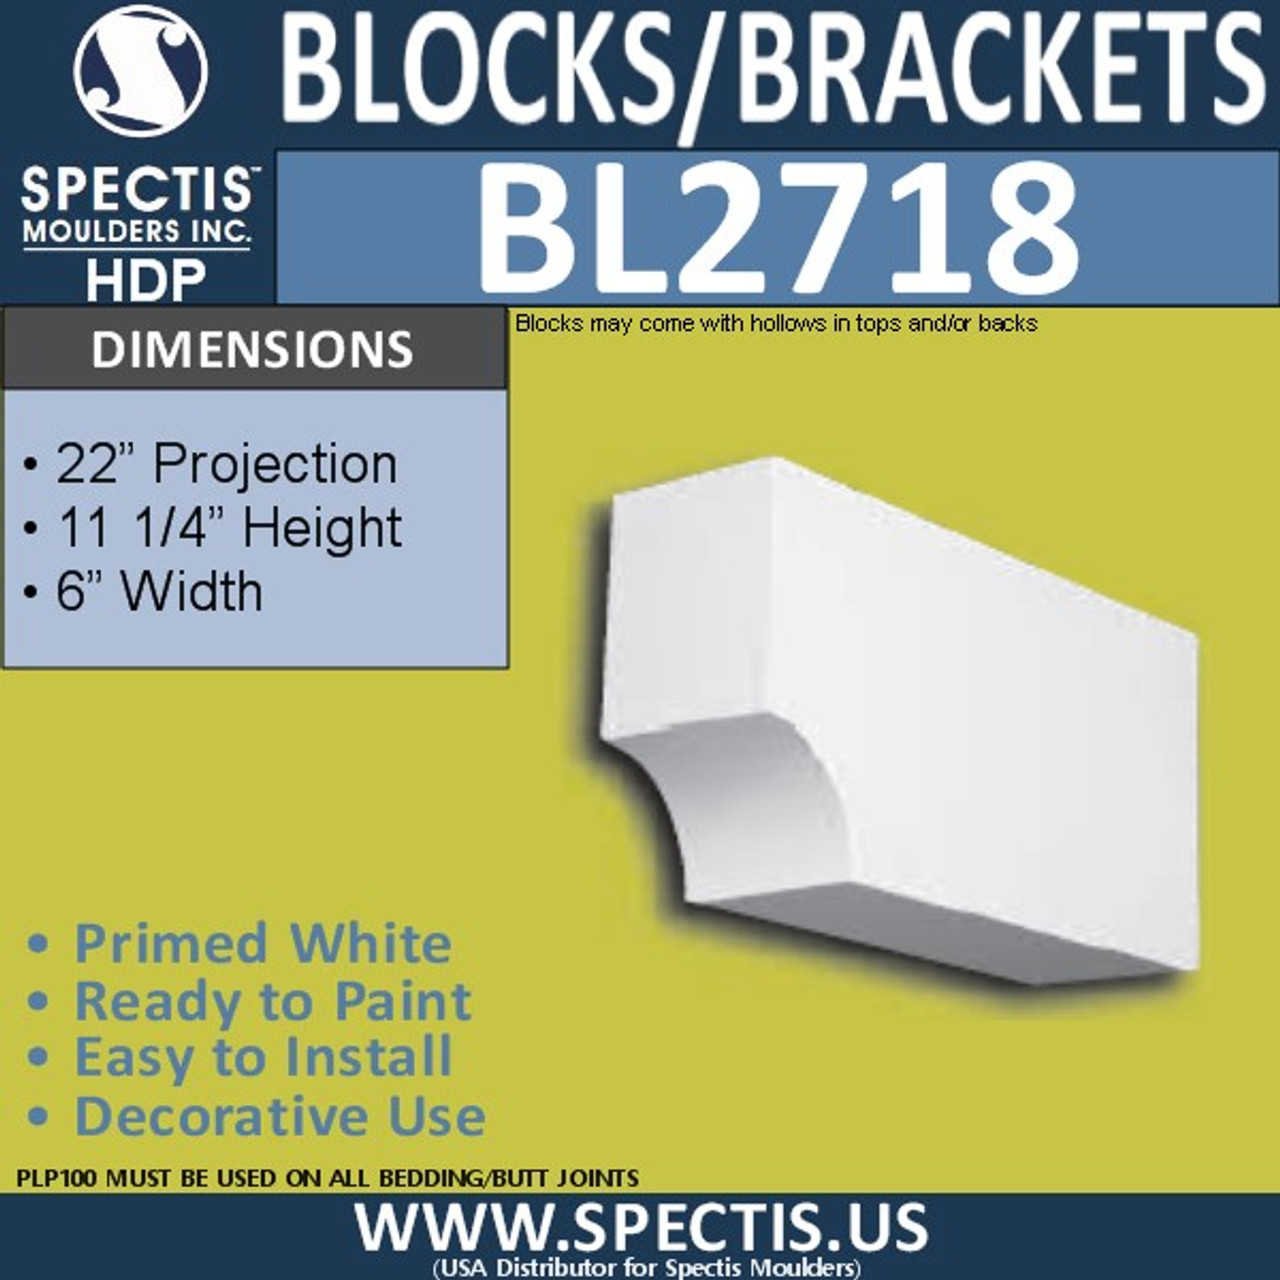 "BL2718 Eave Block or Bracket 6""W x 11.25""H x 22"" P"